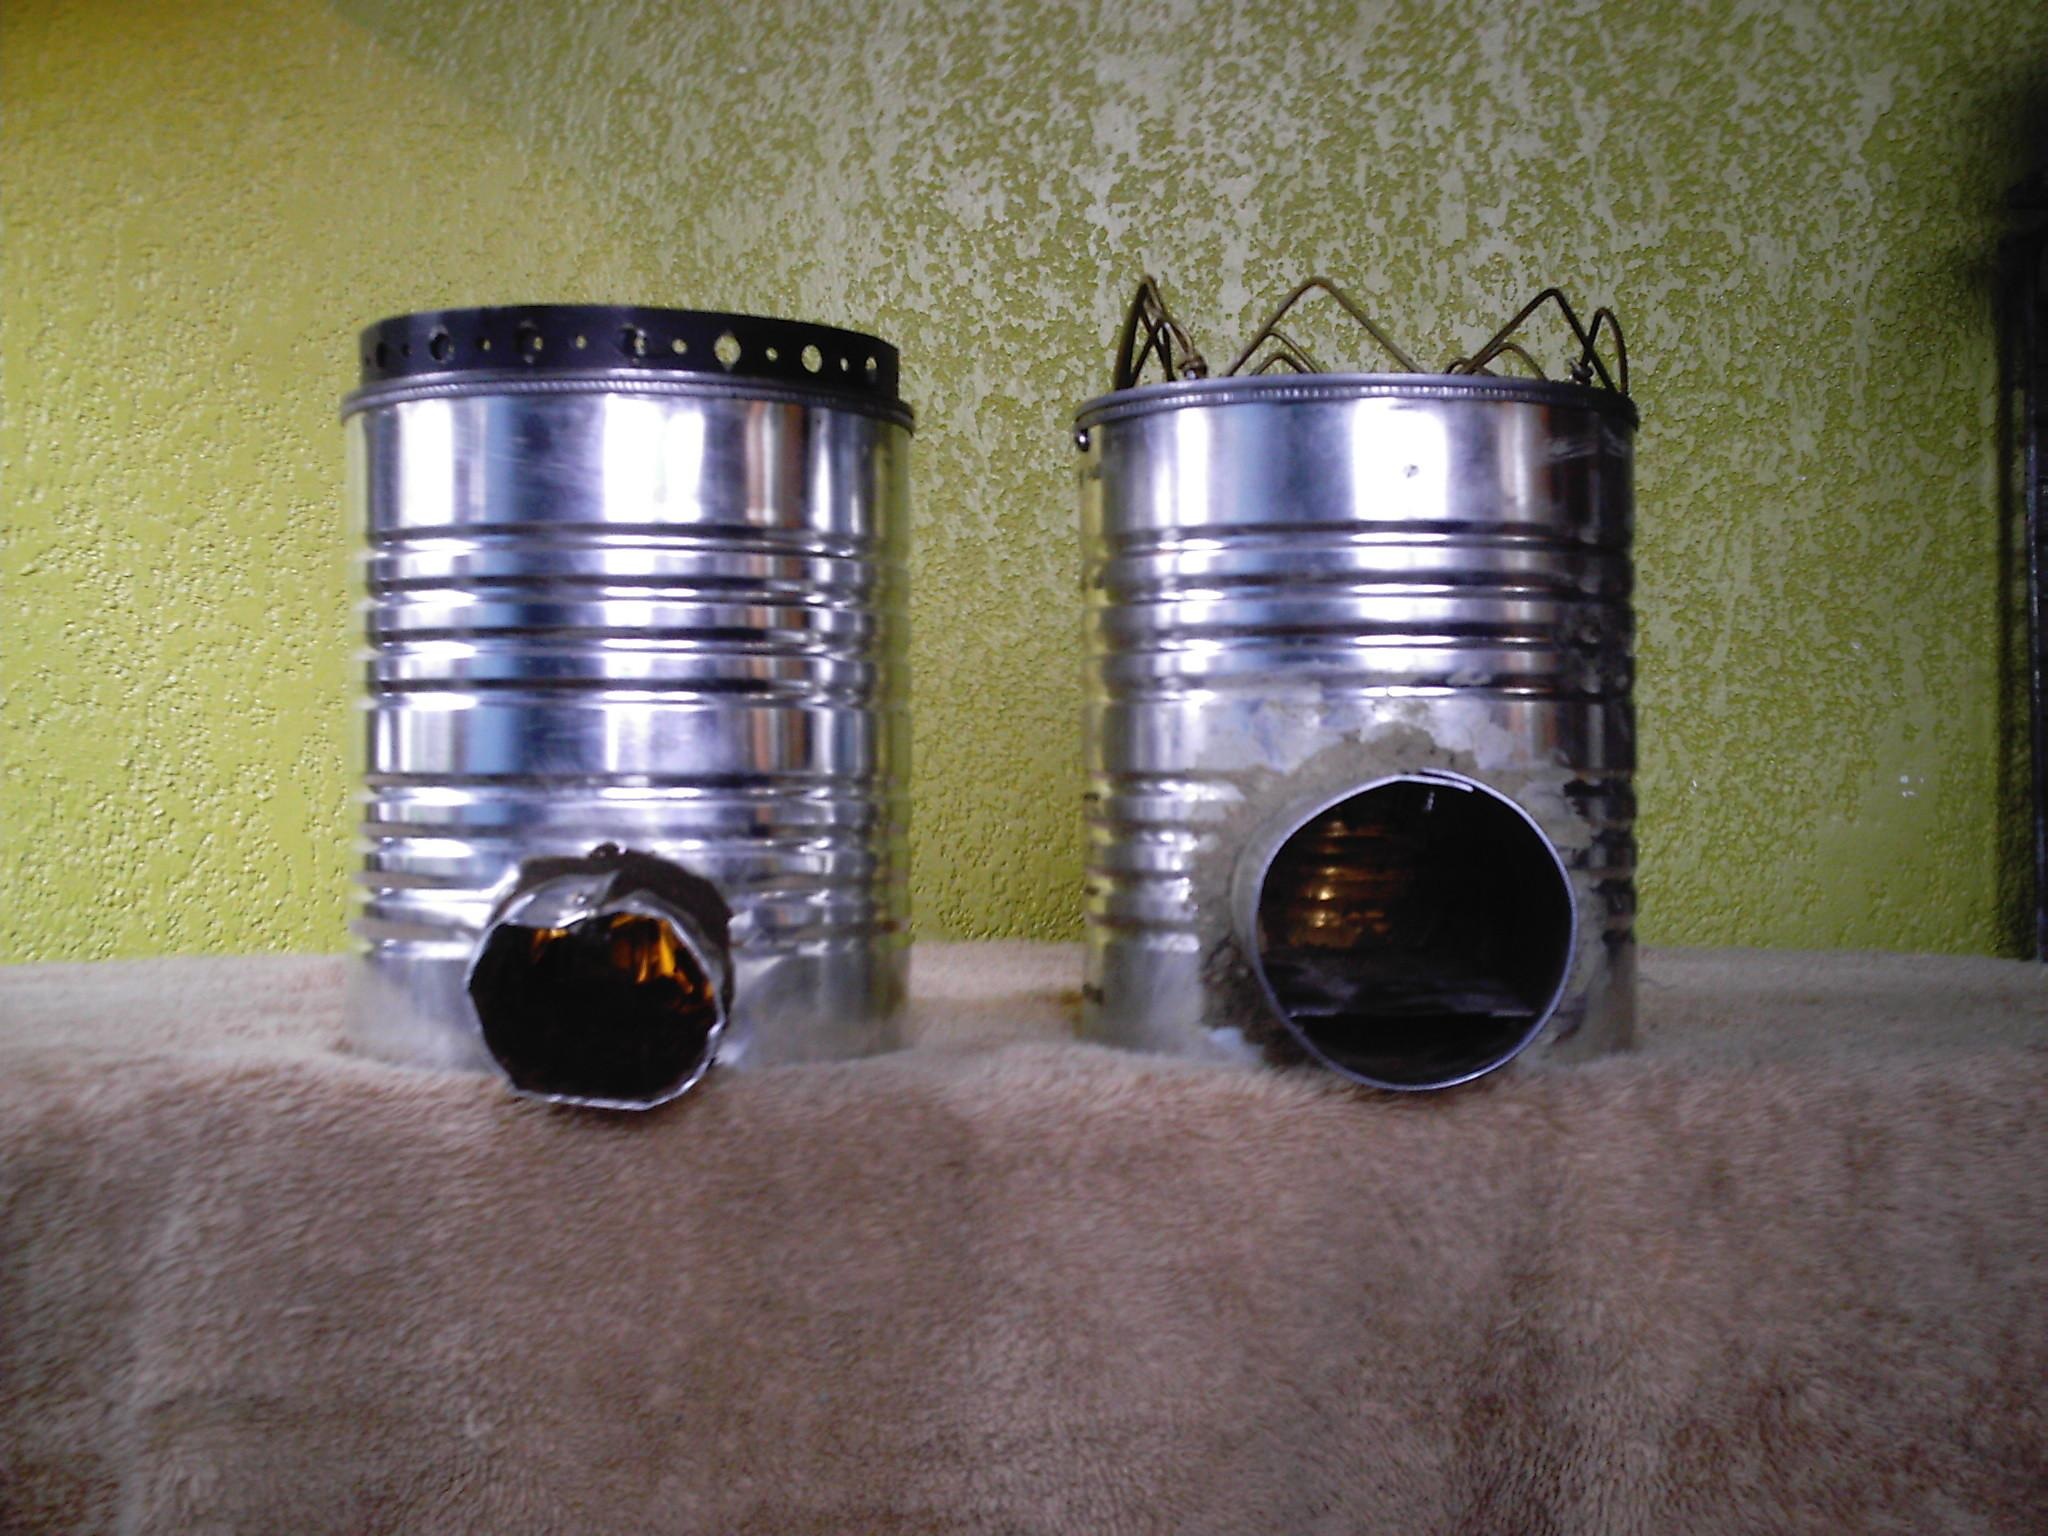 Diy Rocket Stoves Robert Wildwood Robnoxious Years Blog